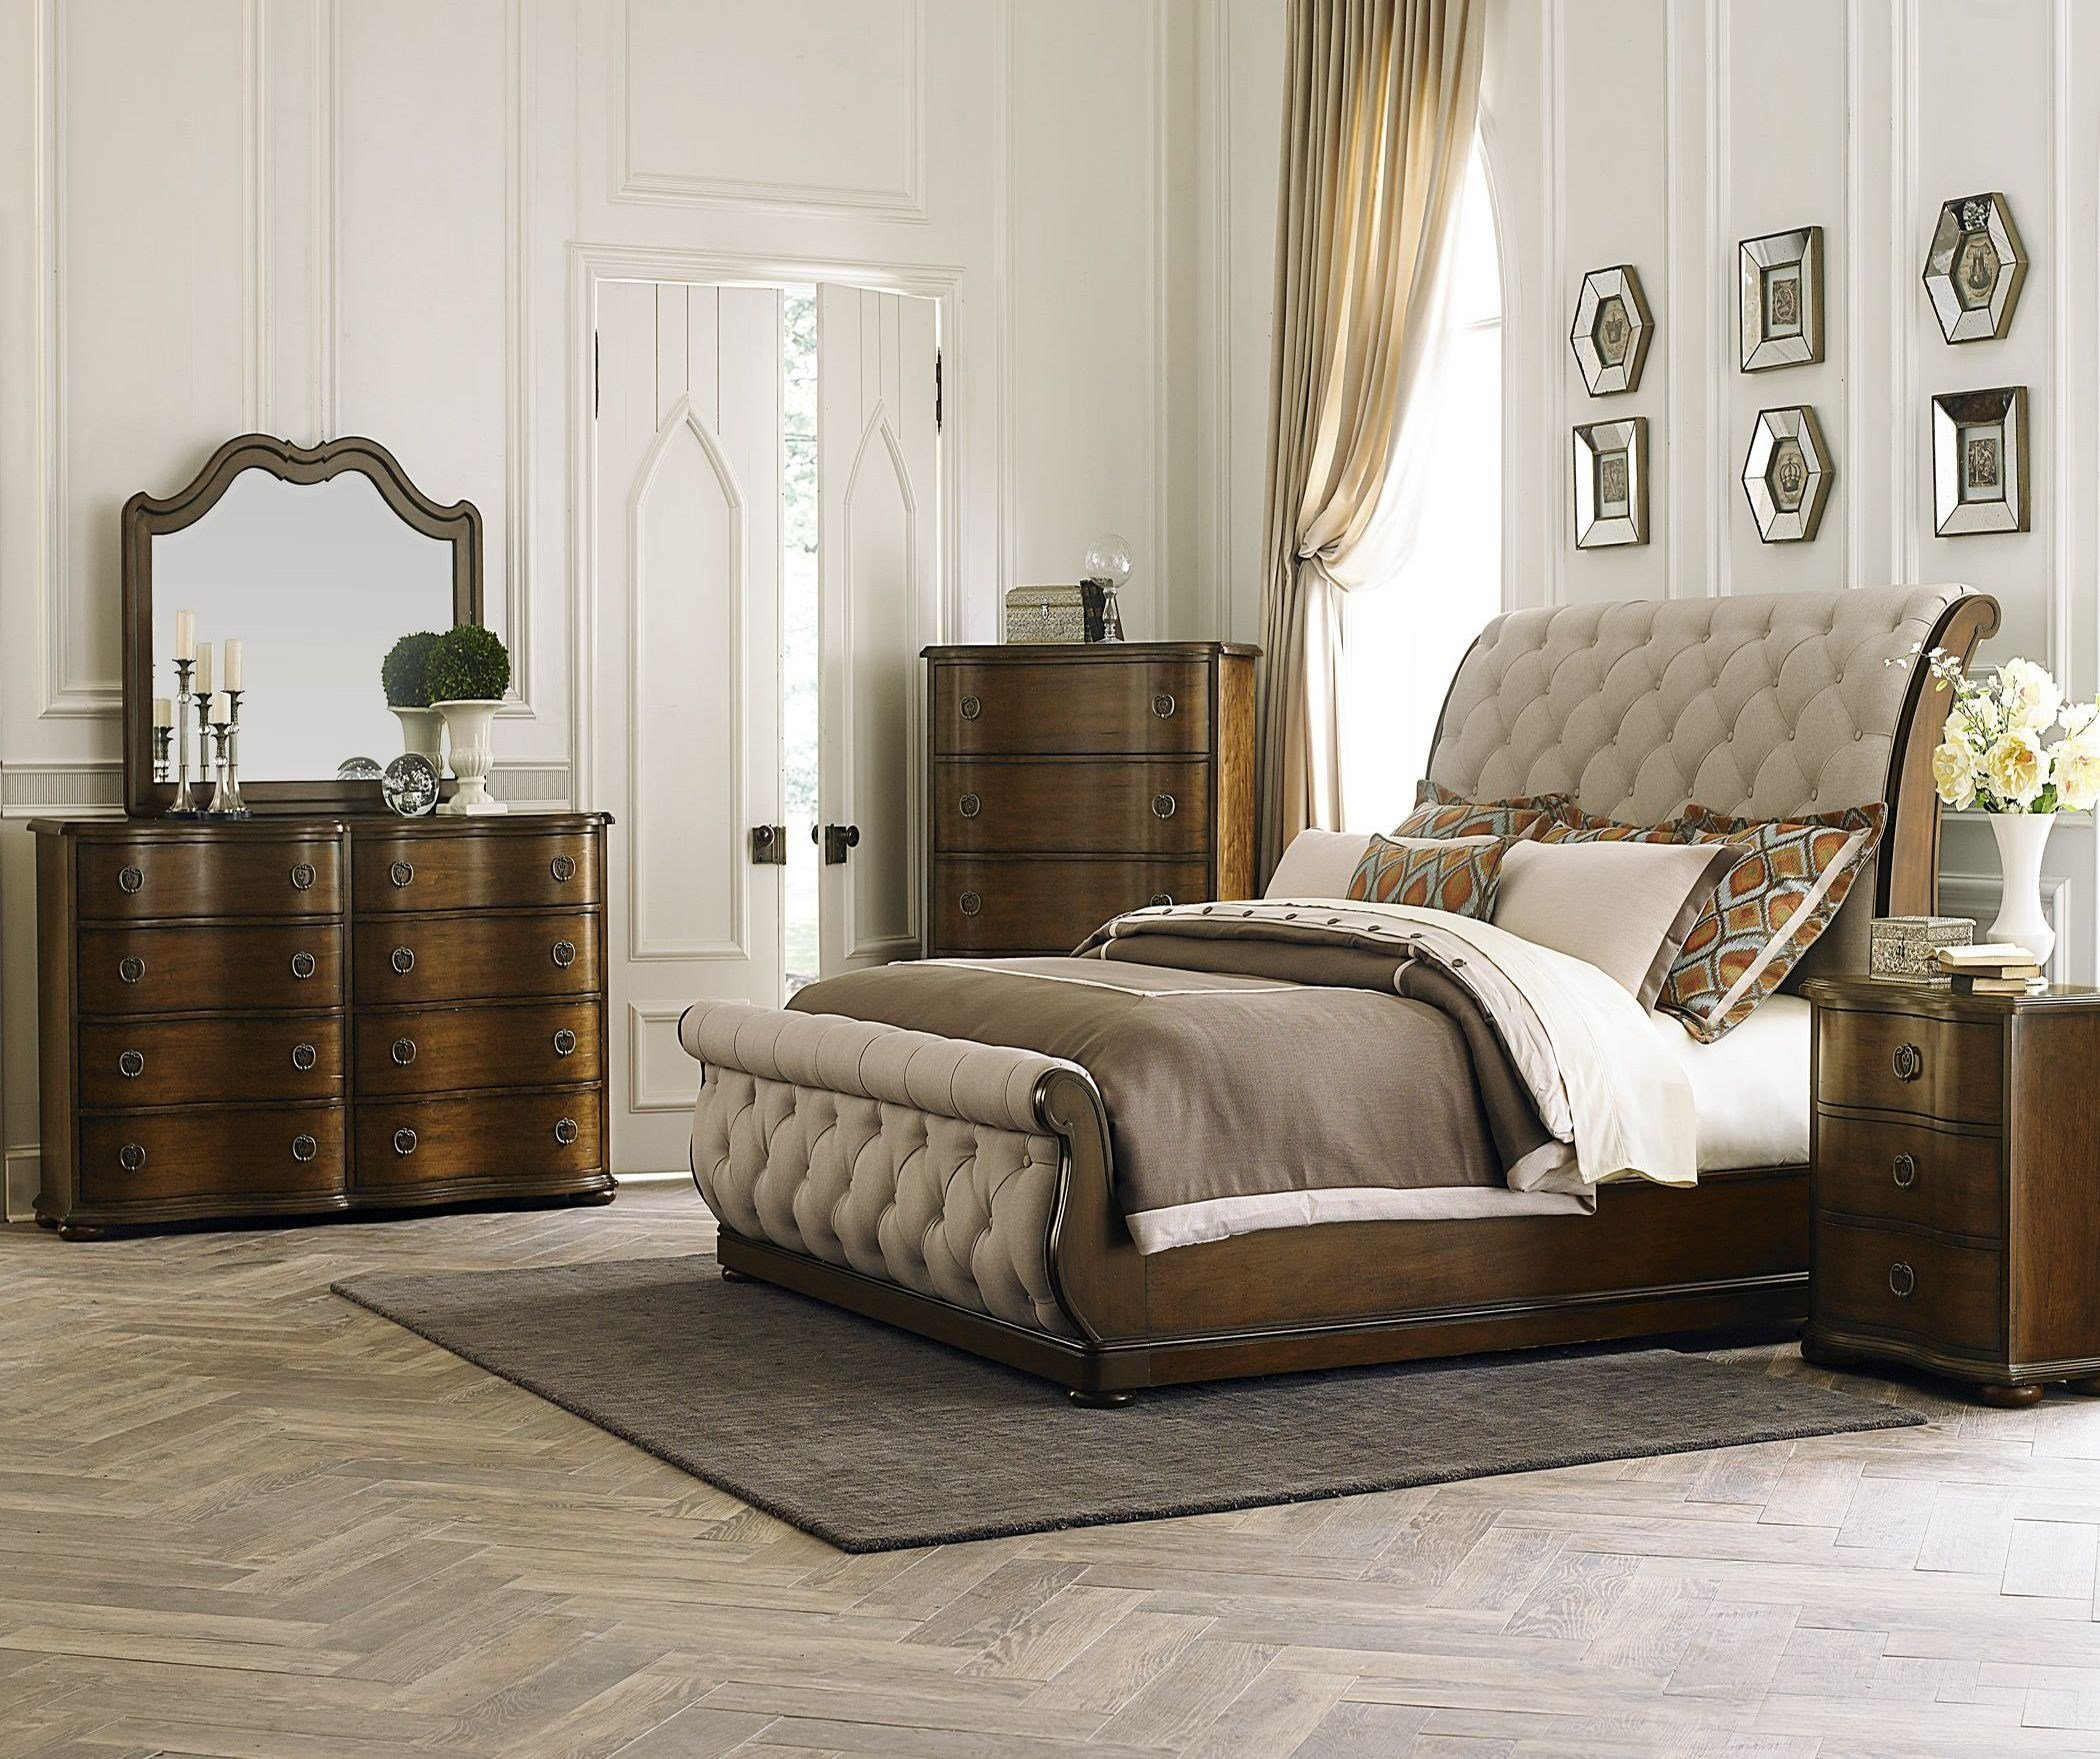 Best Cotswold Upholstered Sleigh Bedroom Set From Liberty 545 With Pictures